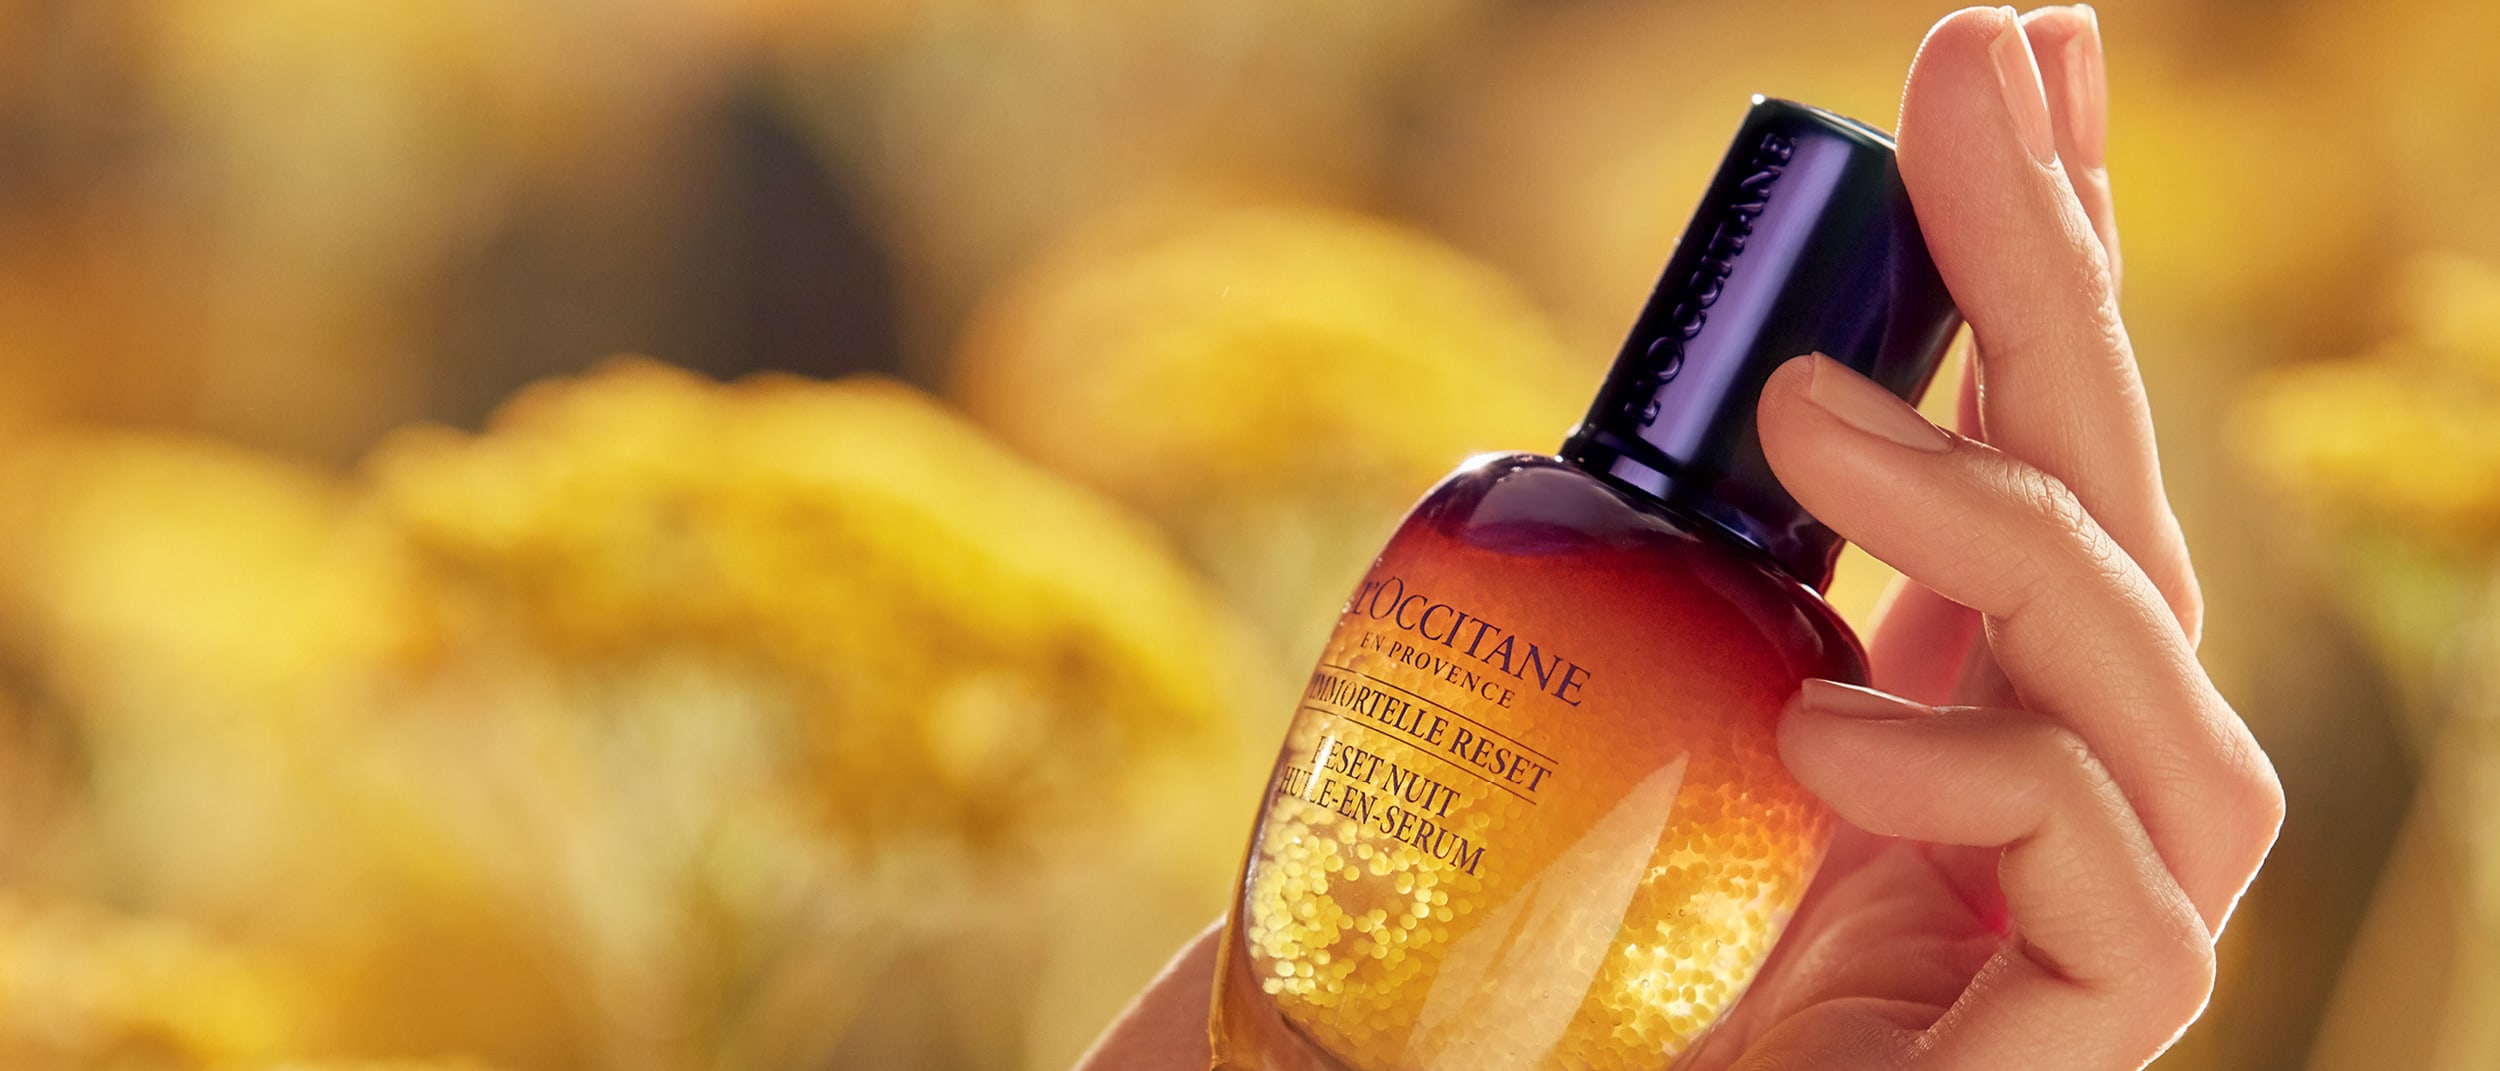 L'OCCITANE for Eye See PNG